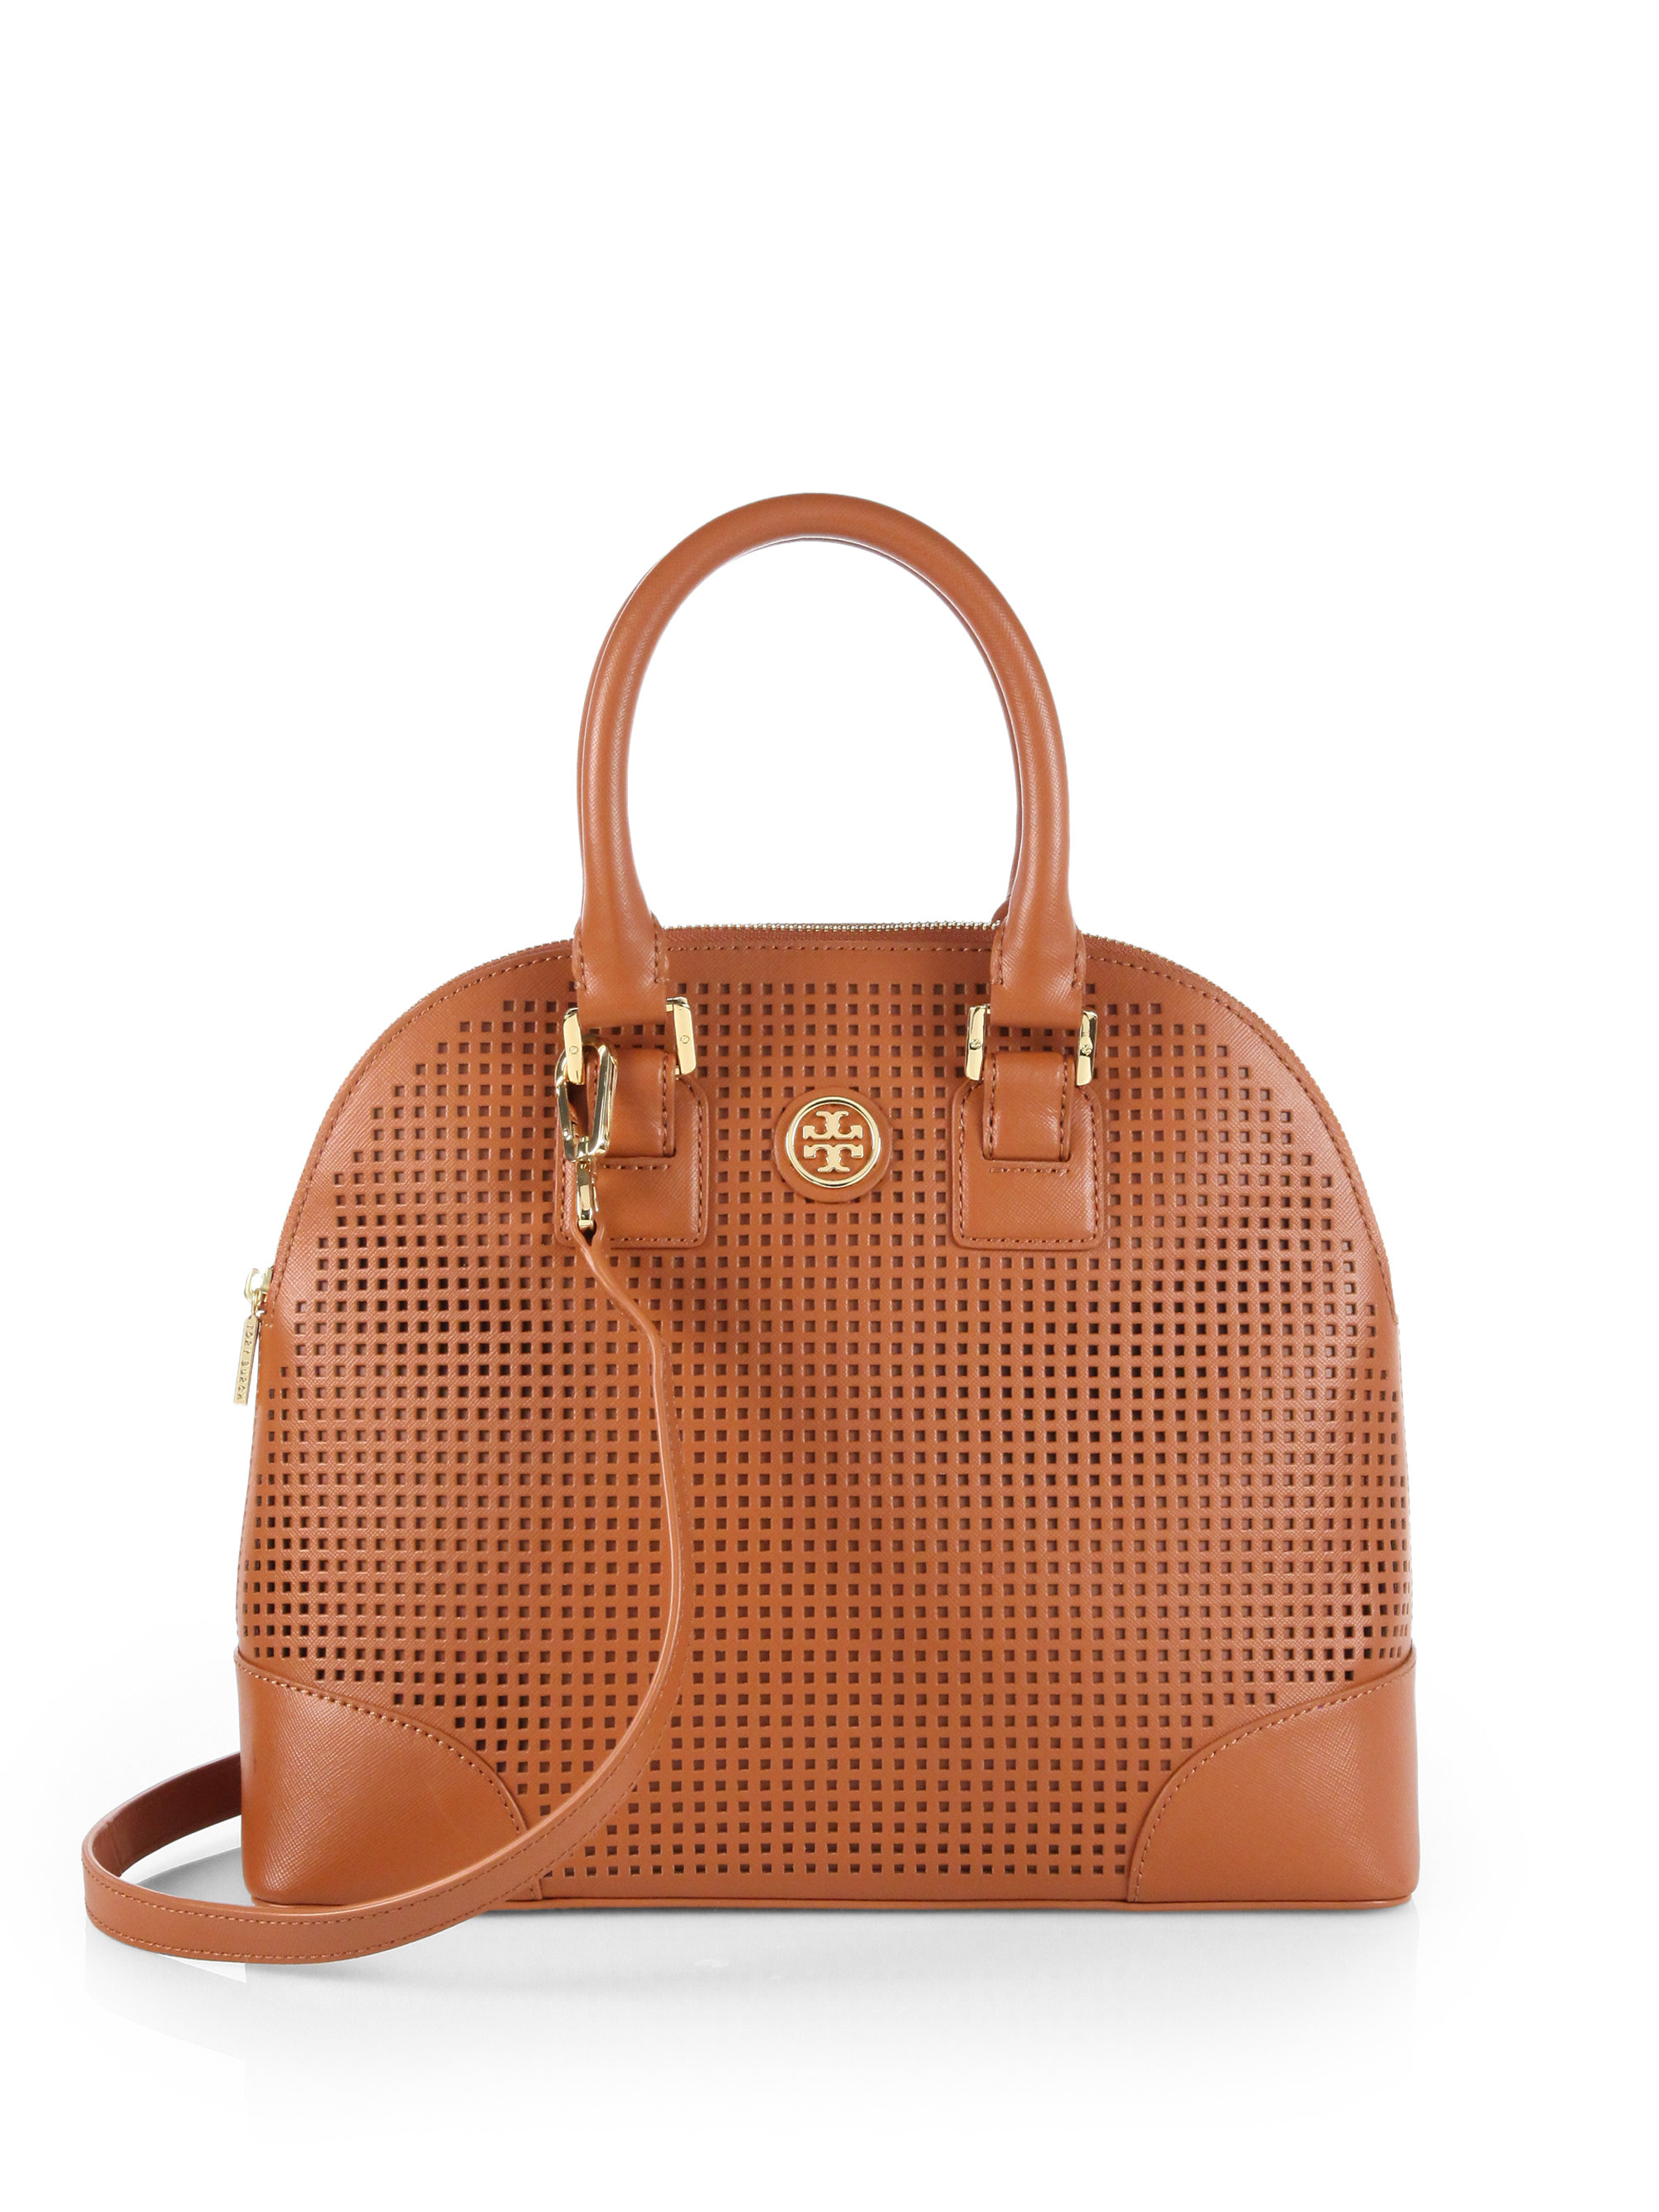 Kate Spade Perforated Leather Tote